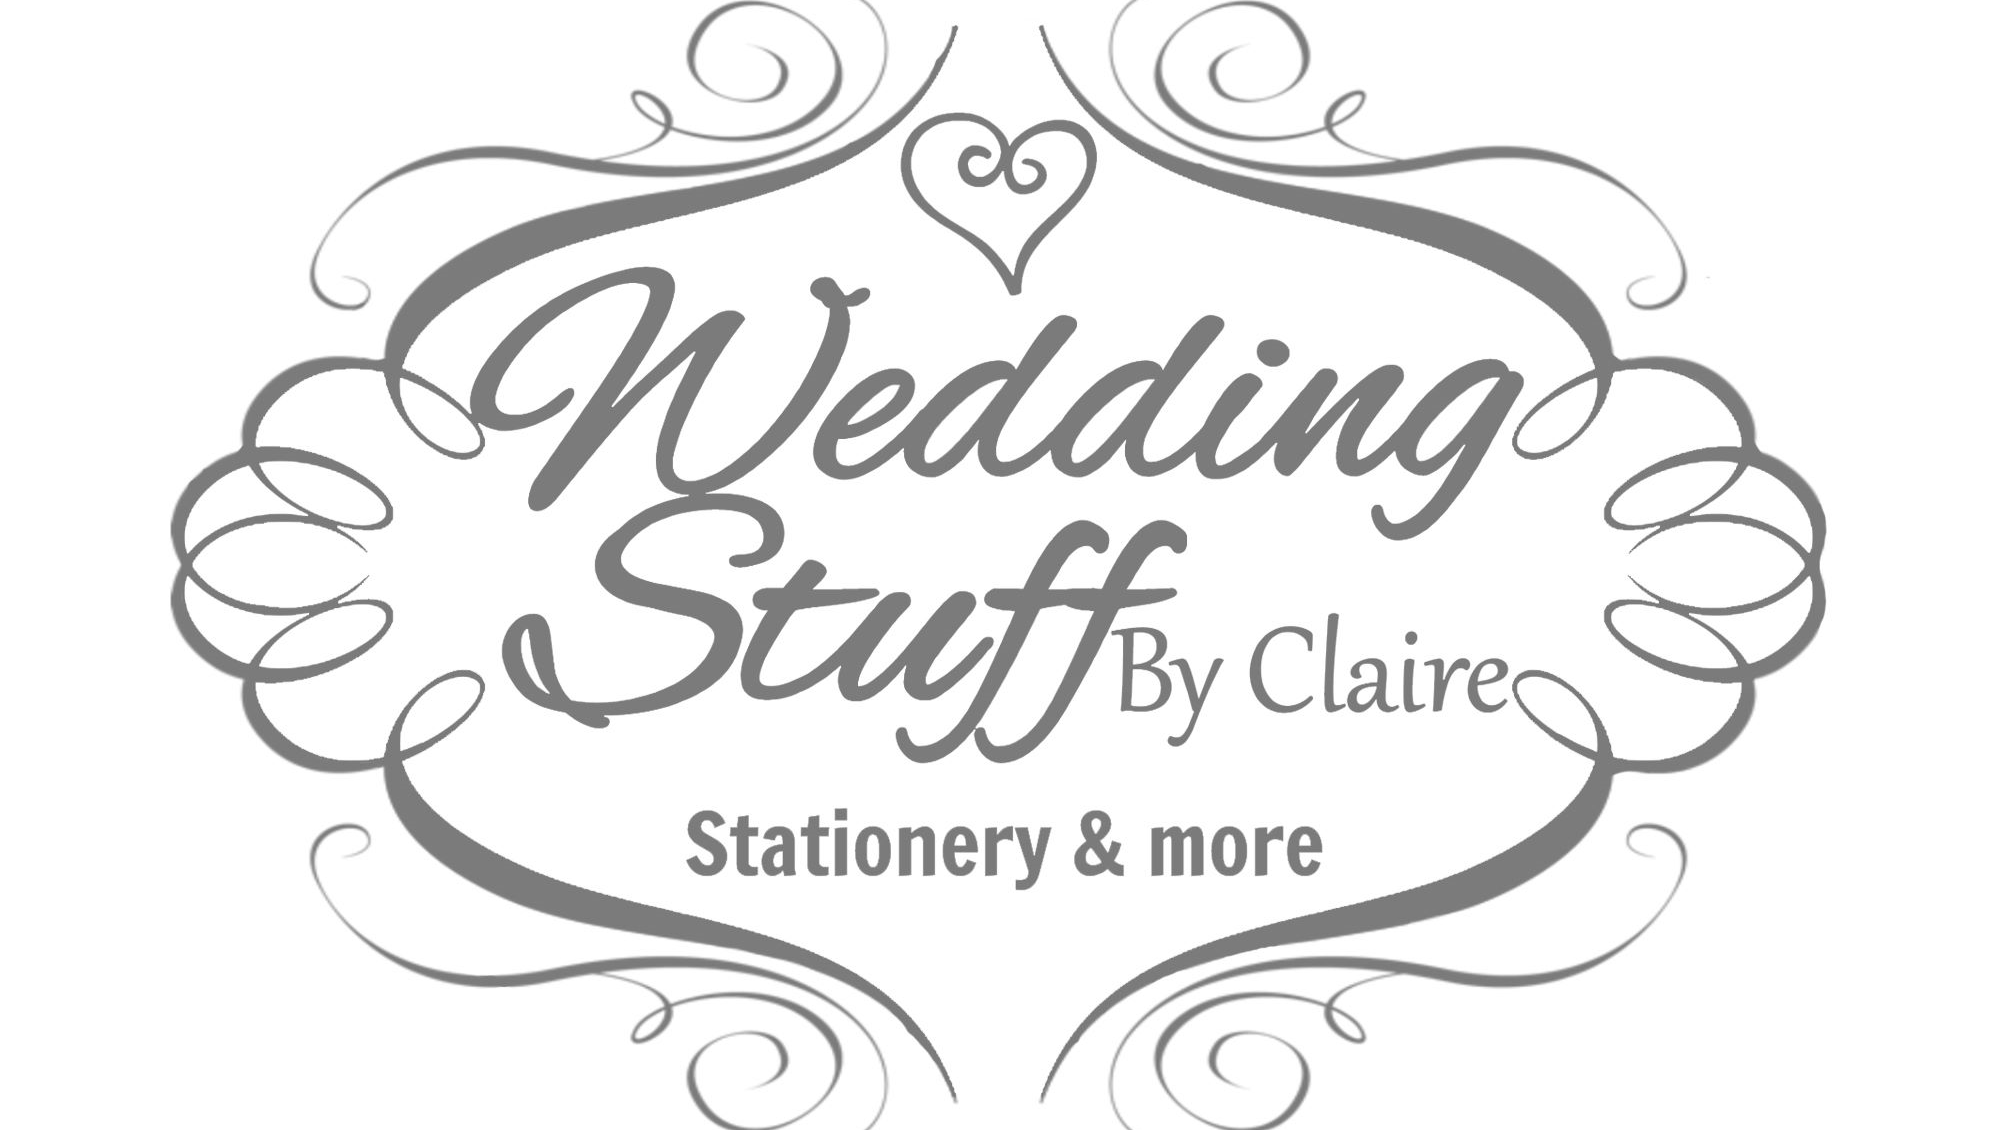 Wedding Stuff by Claire